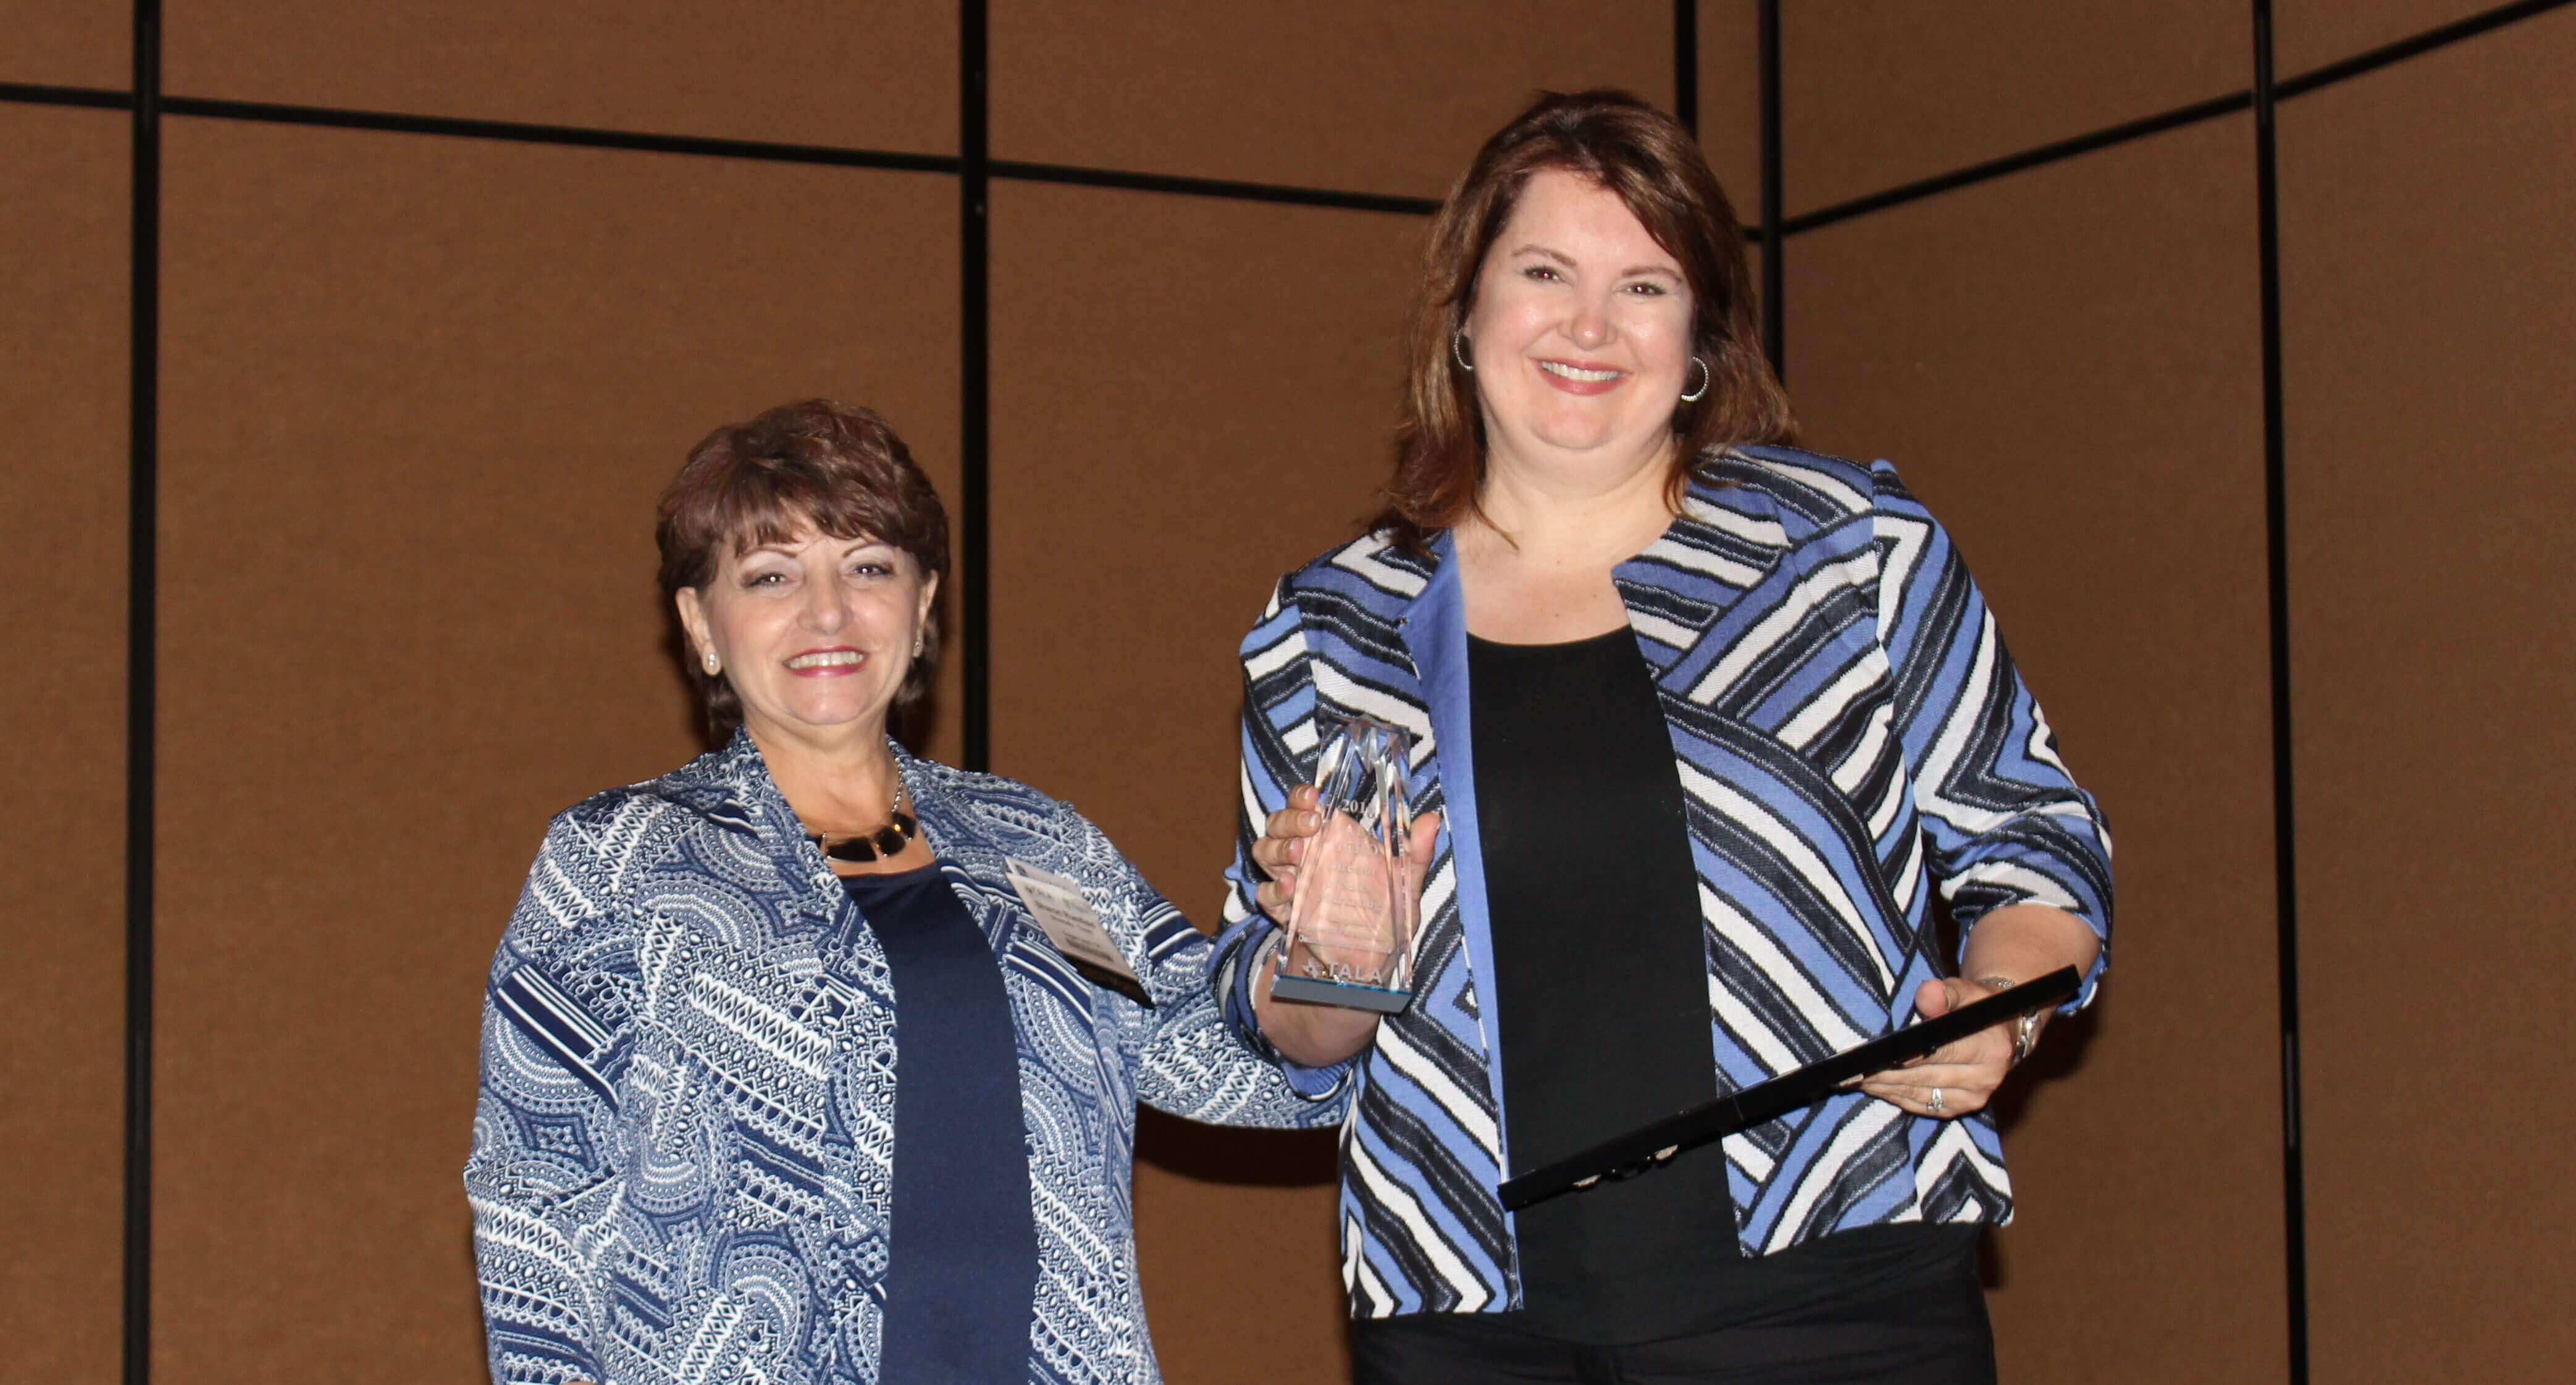 Turtle Creek's Lisa Mach Receives TALA Hero Award for Second Year in a Row